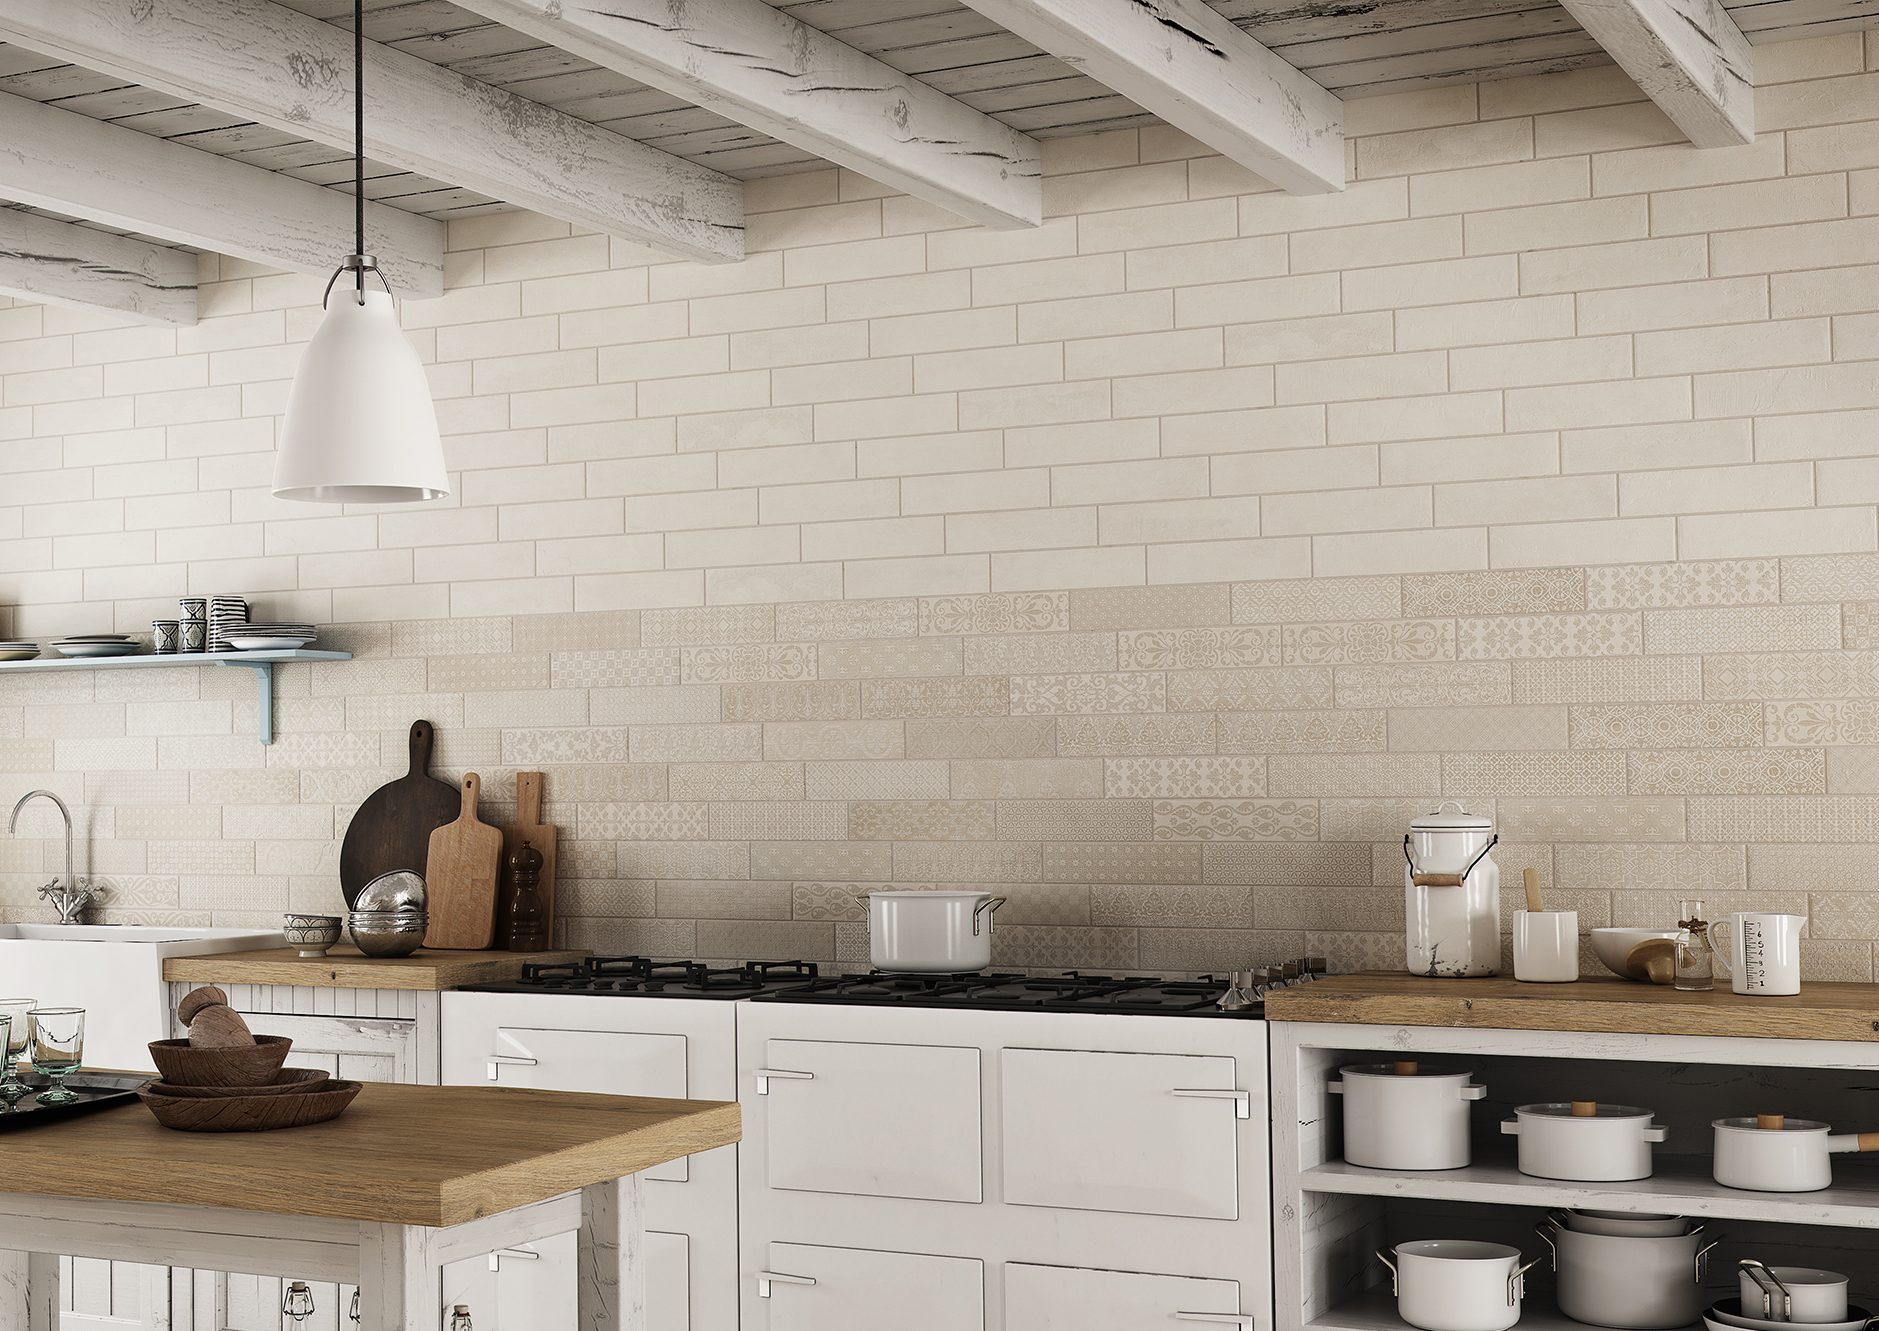 Deco Bricktrend Almond by Marquis Collection